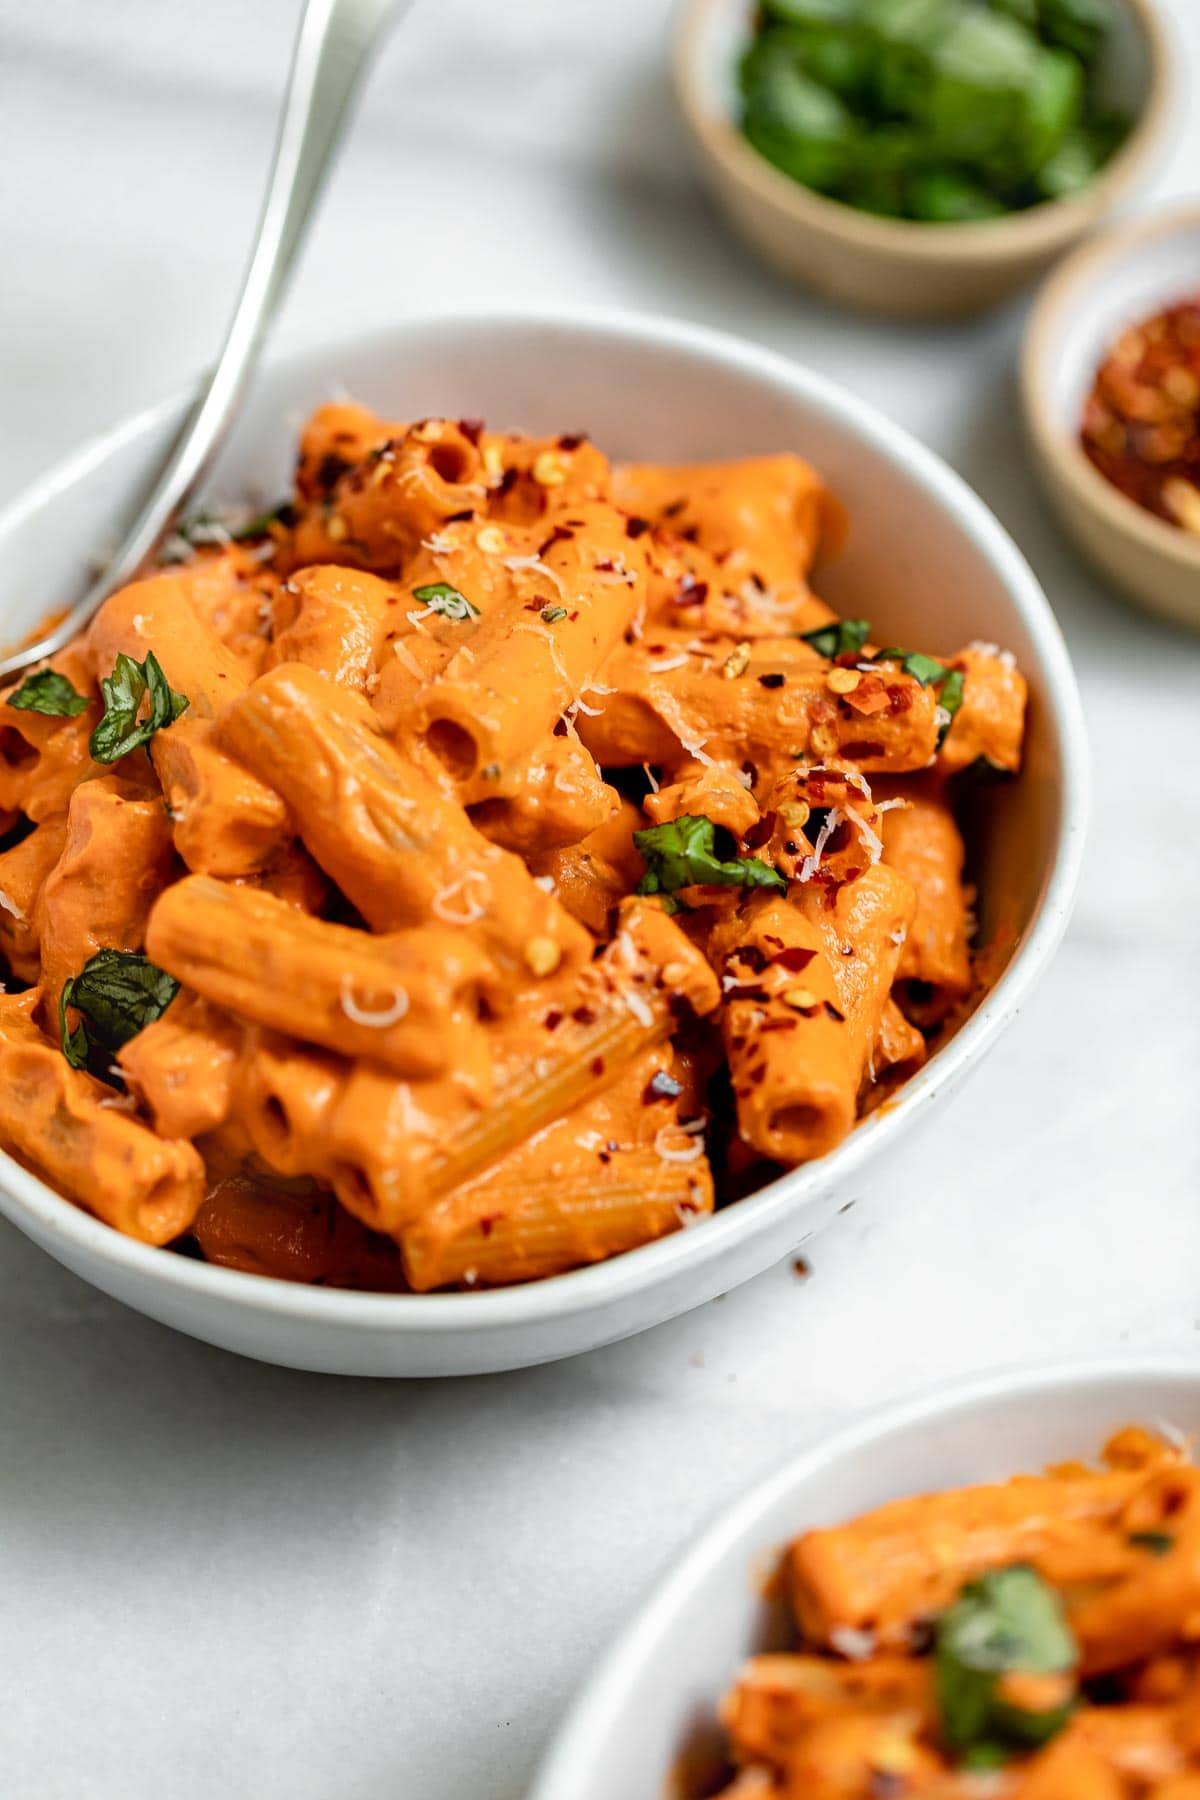 Angled view of the roasted red pepper pasta with basil on top.